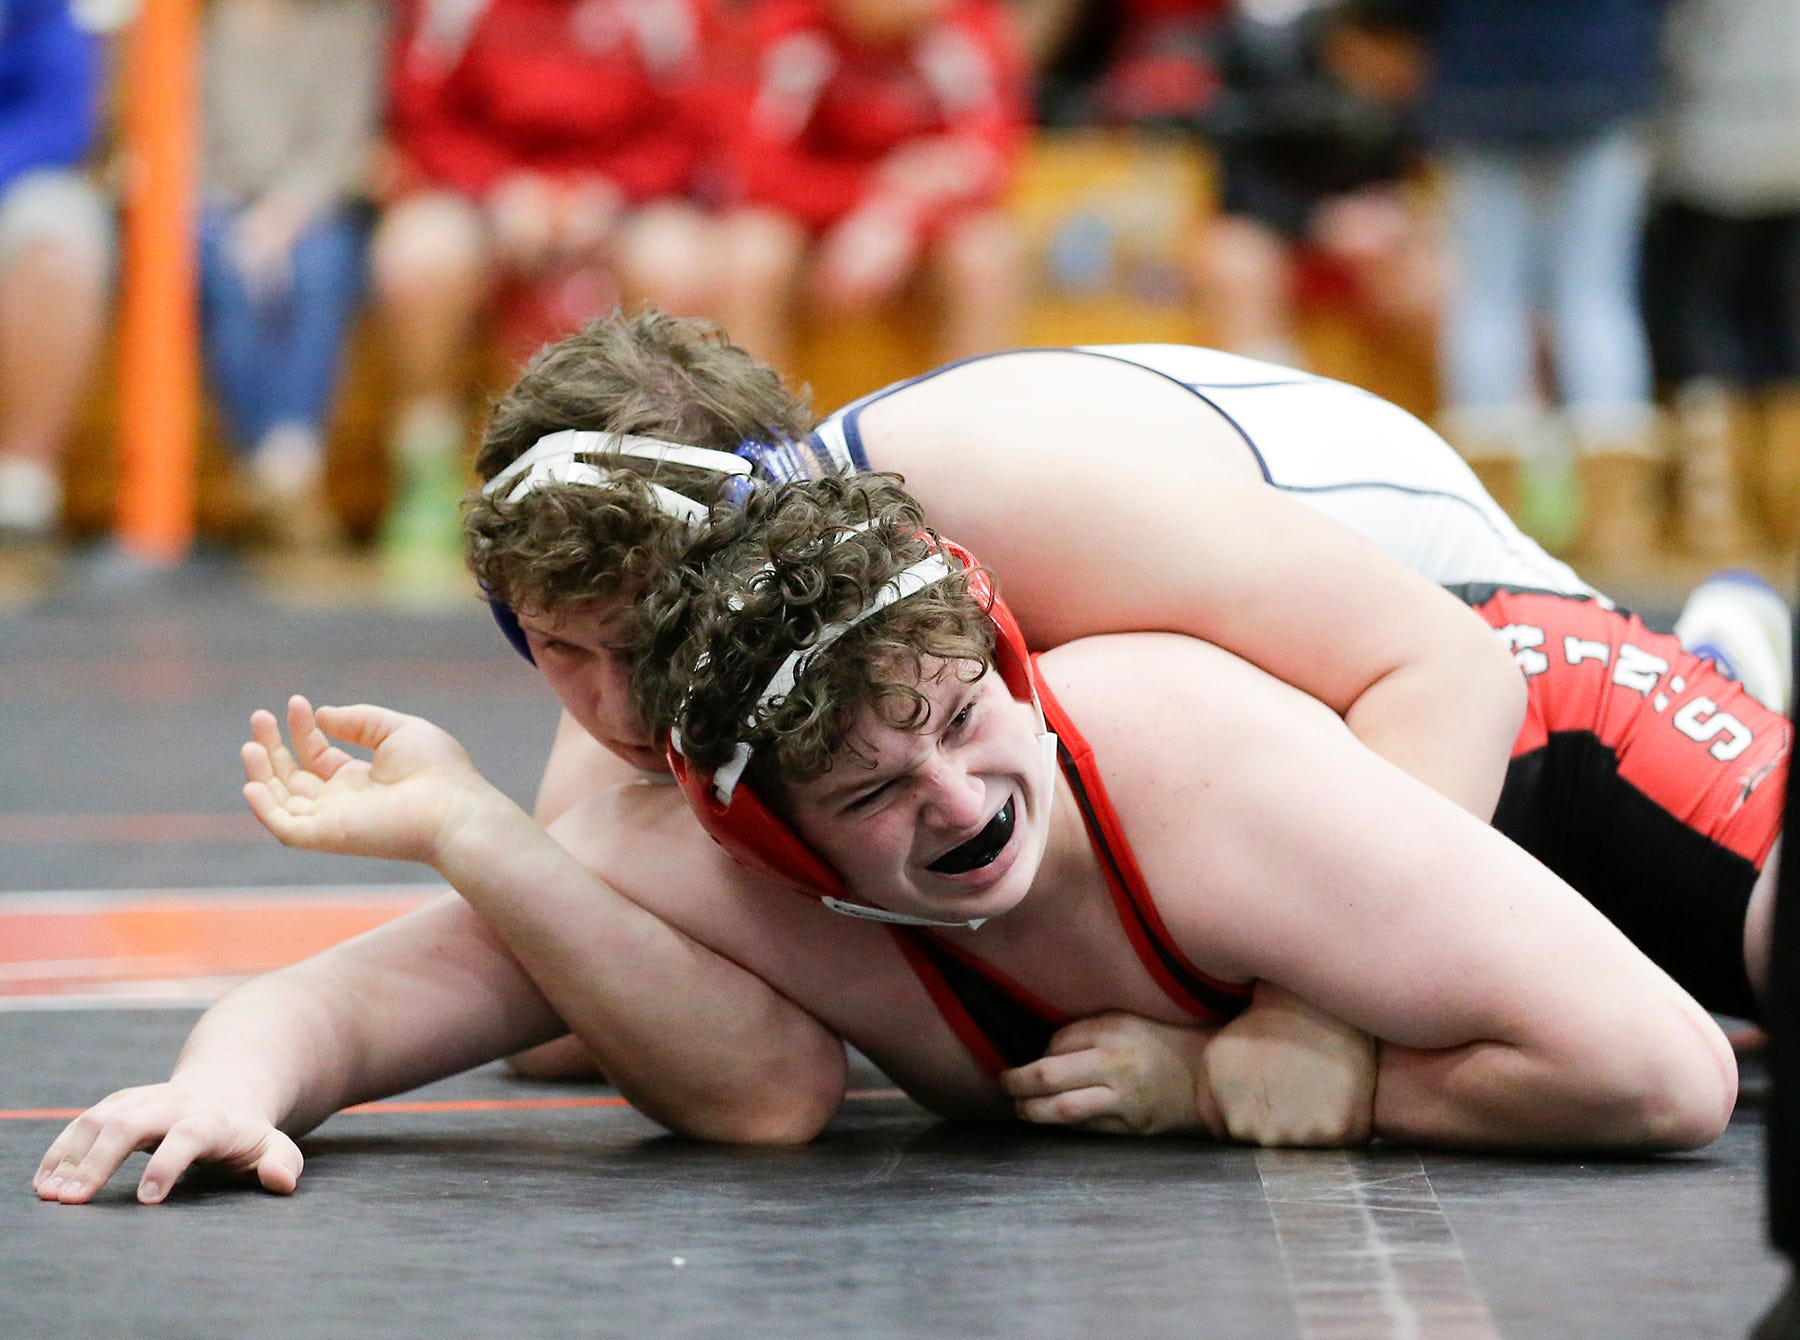 Blake Pudwell of West Bend West High School wrestles Mitchell Prueser of Sheboygan South High School in the 220 pound weight class during the WIAA sectionals Saturday, February 16, 2019 in Hartford, Wis. Pudwell won with a score of 13-4. Doug Raflik/USA TODAY NETWORK-Wisconsin